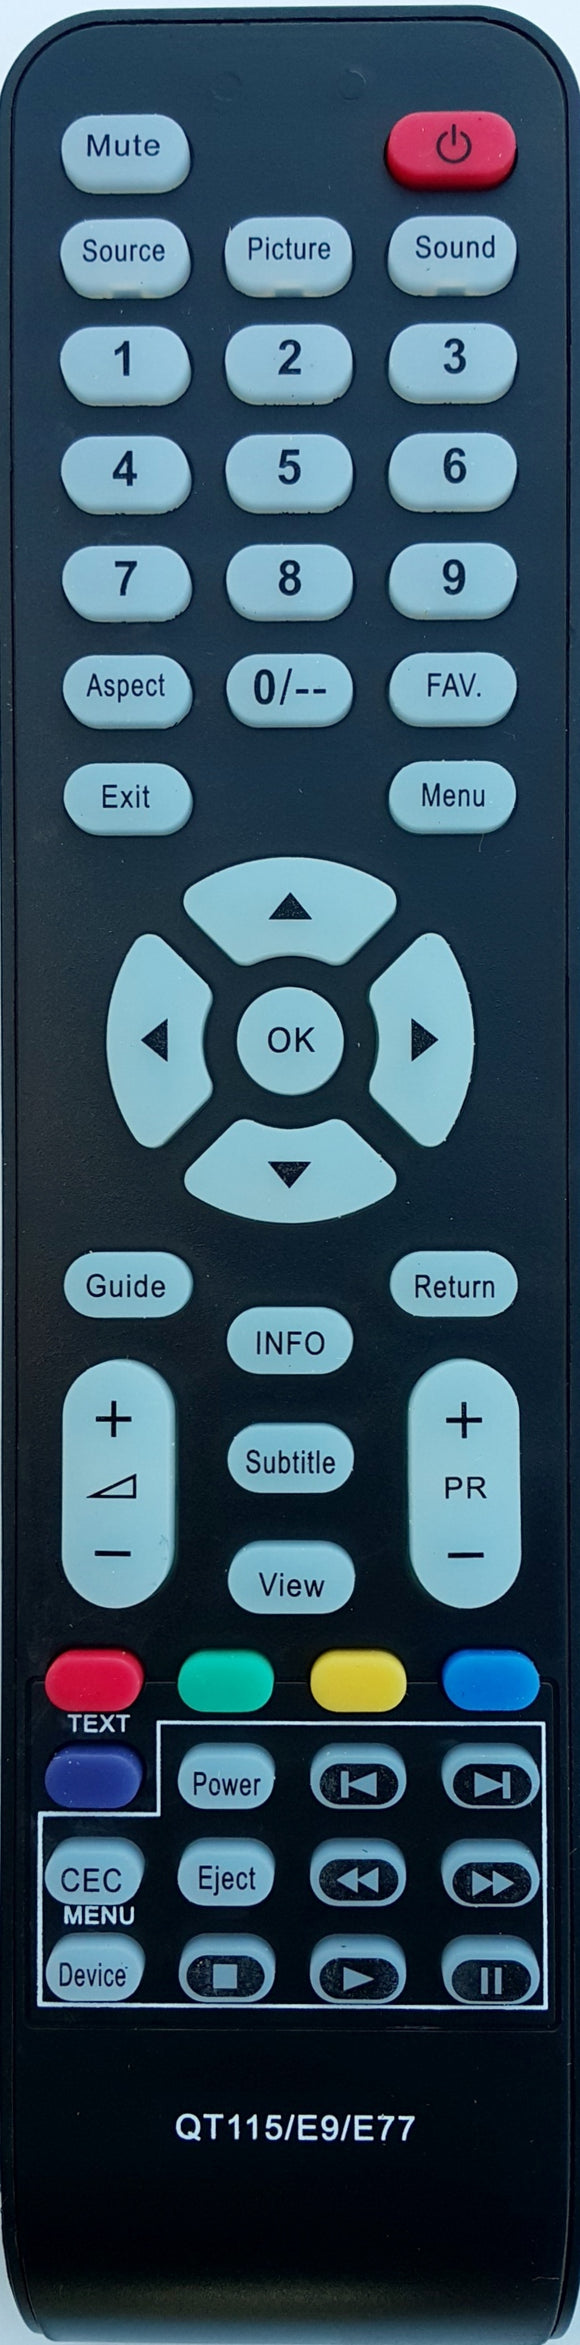 REPLACEMENT SONIQ REMOTE CONTROL QT115 -  QSL326TV2 TV - Remote Control Warehouse